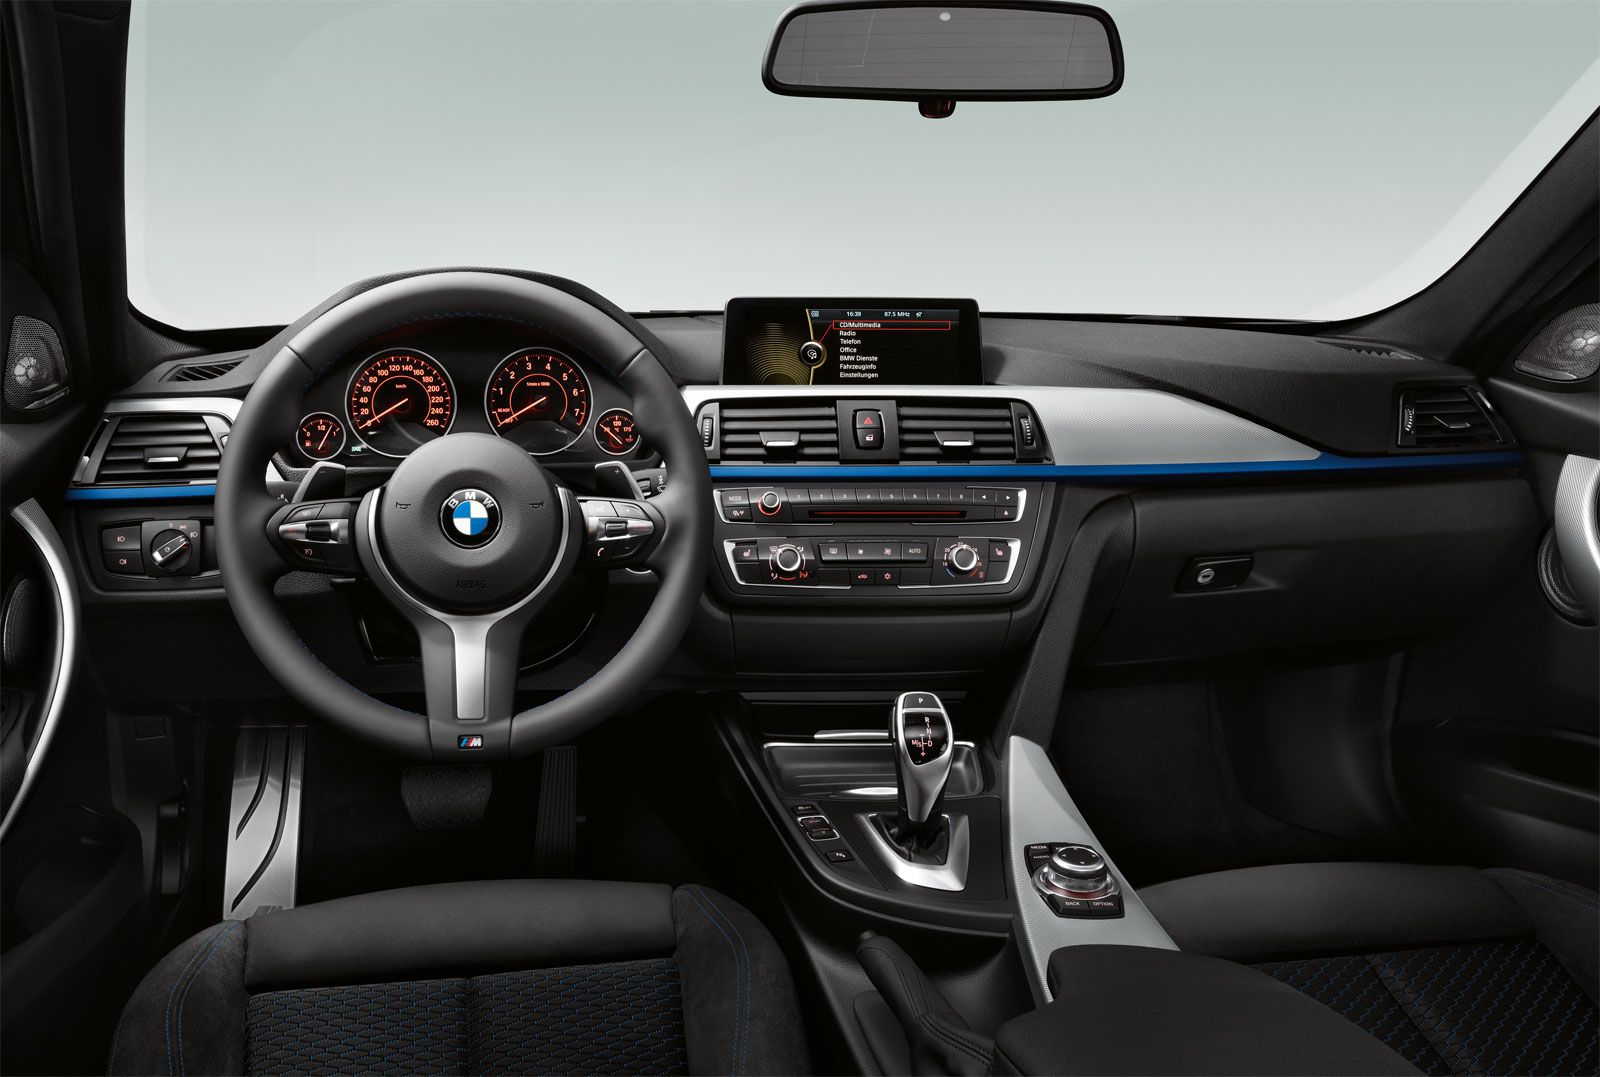 The interior of the 2012 335i Sedan with the M Sport package.